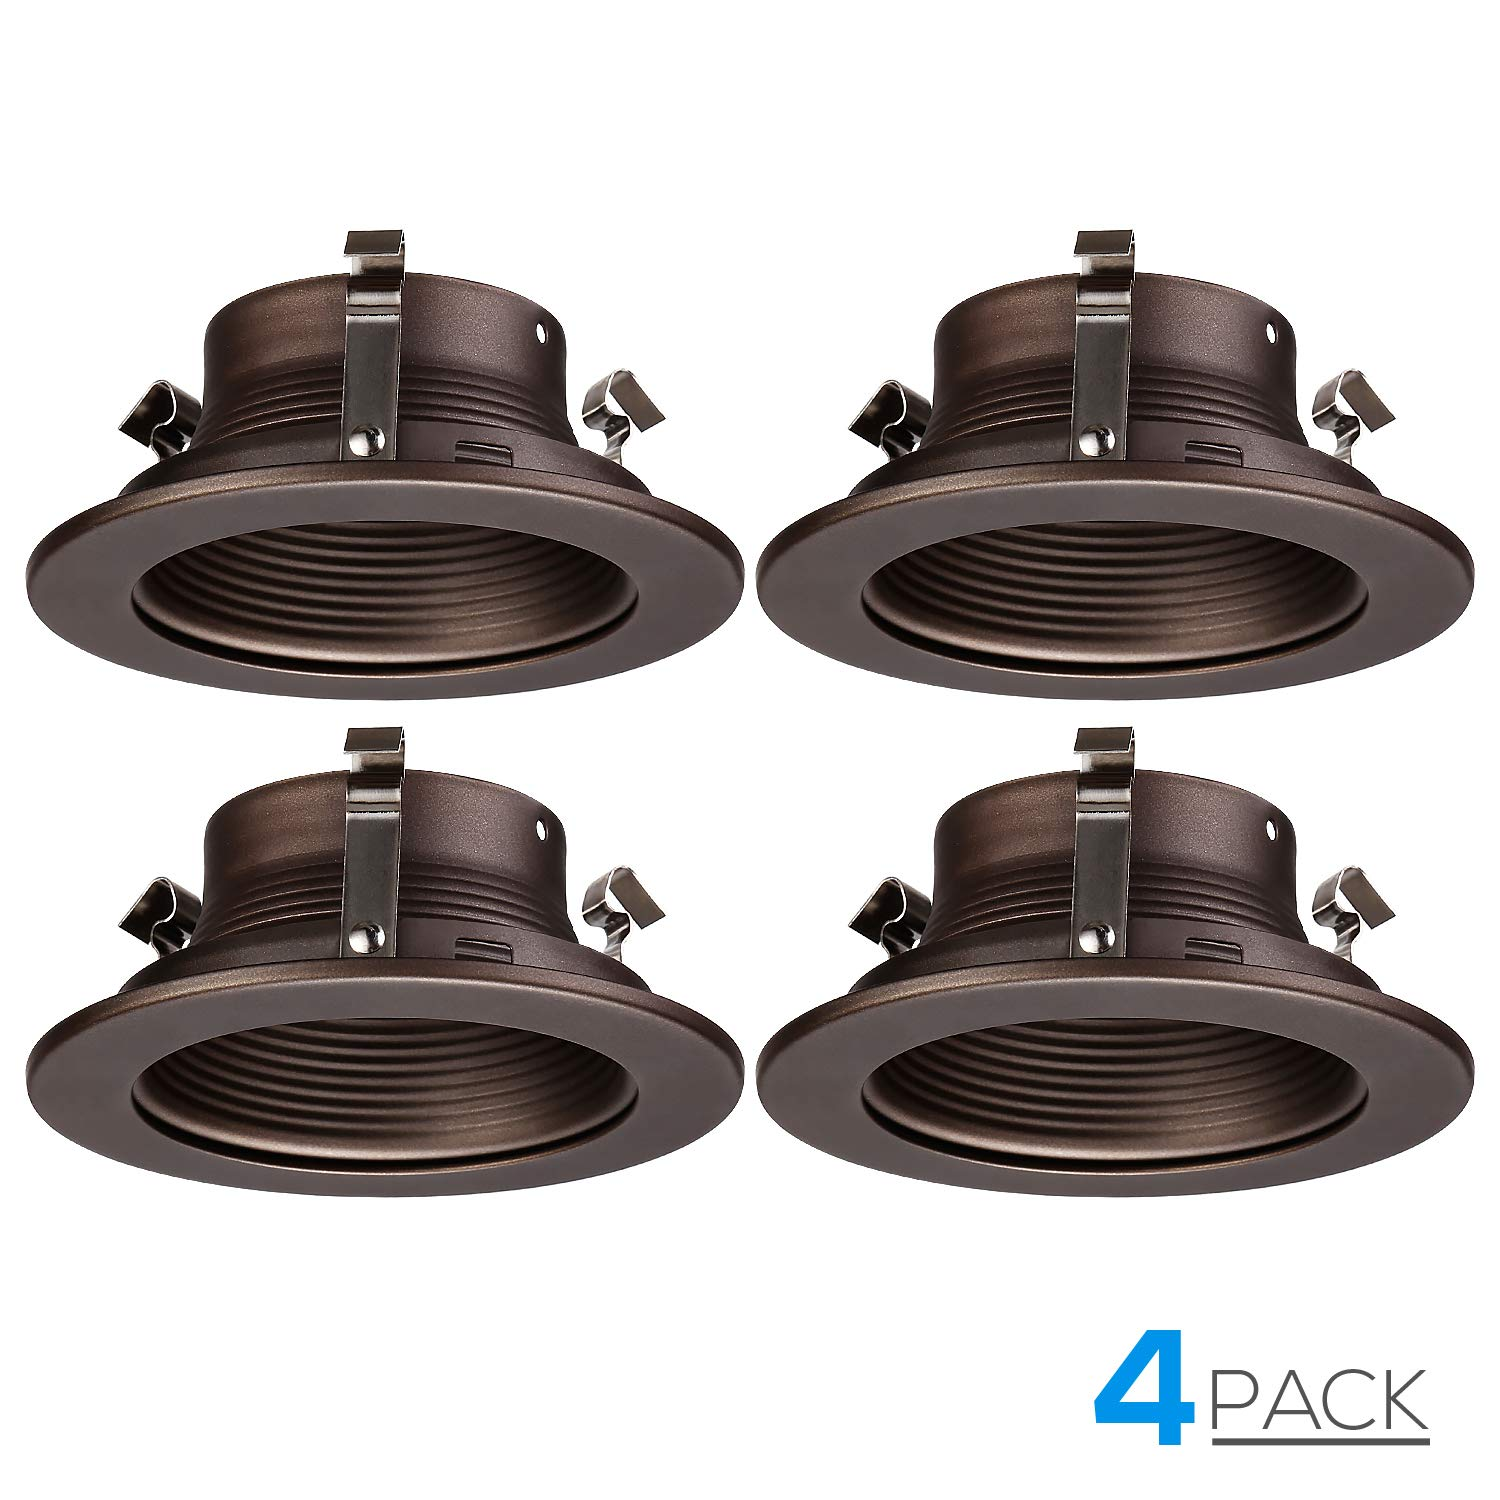 "TORCHSTAR 4 Inches Recessed Can Light Trim, Oil Rubbed Bronze Metal Step Baffle Trim, for PAR20, R20 Light Bulbs, for 4"" Recessed Cans, Halo/Juno Remodel Recessed Housing, Pack of 4"